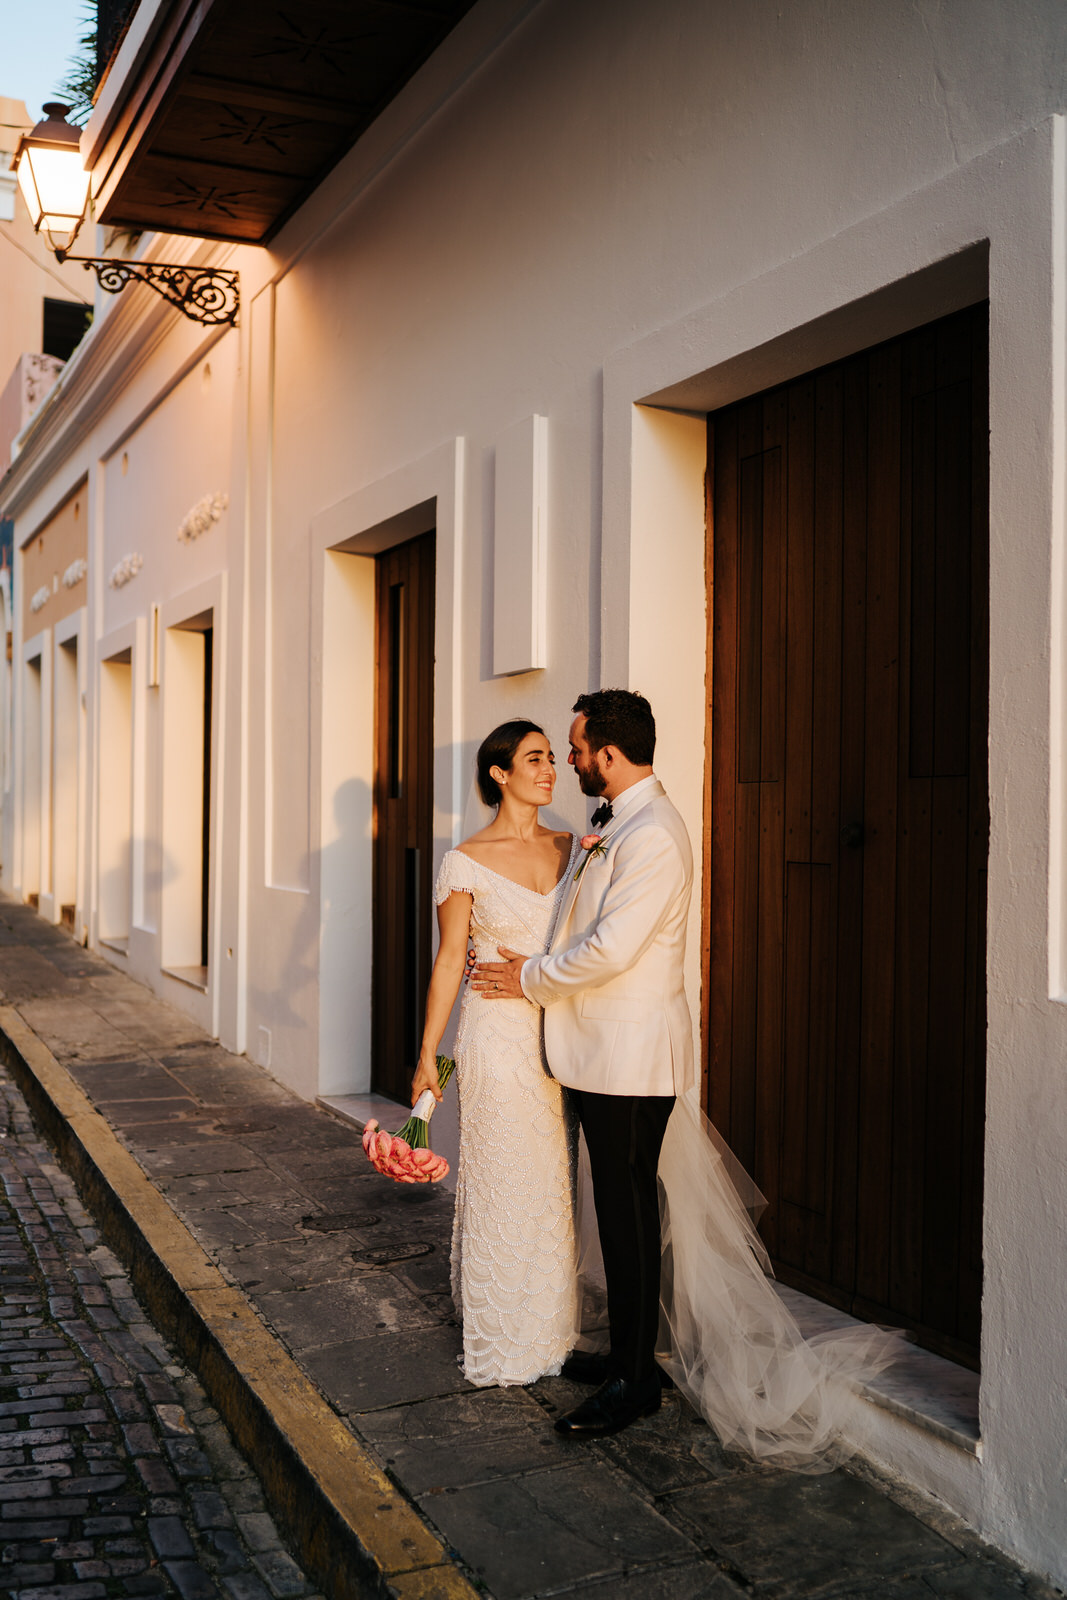 Beautiful, warm light shines on bride and groom as the sun sets in front of them and they embrace in the streets of Old San Juan